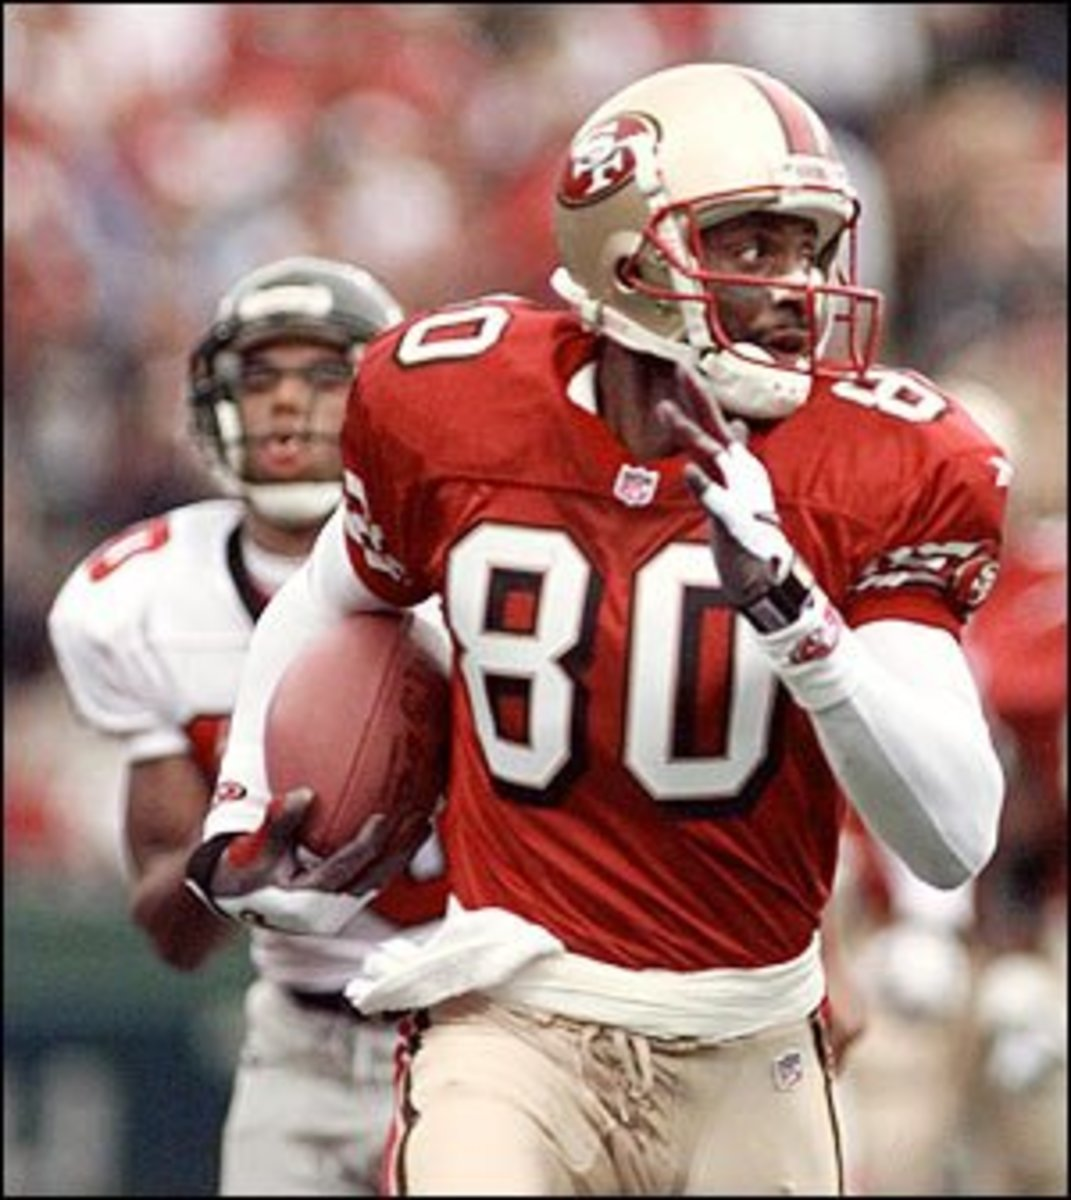 Jerry Rice breaks away from an Atlanta Falcons defender on a 66-yard TD run during the first quarter in playing for the 49 ners in 1998. (Sept. 27, 1998)